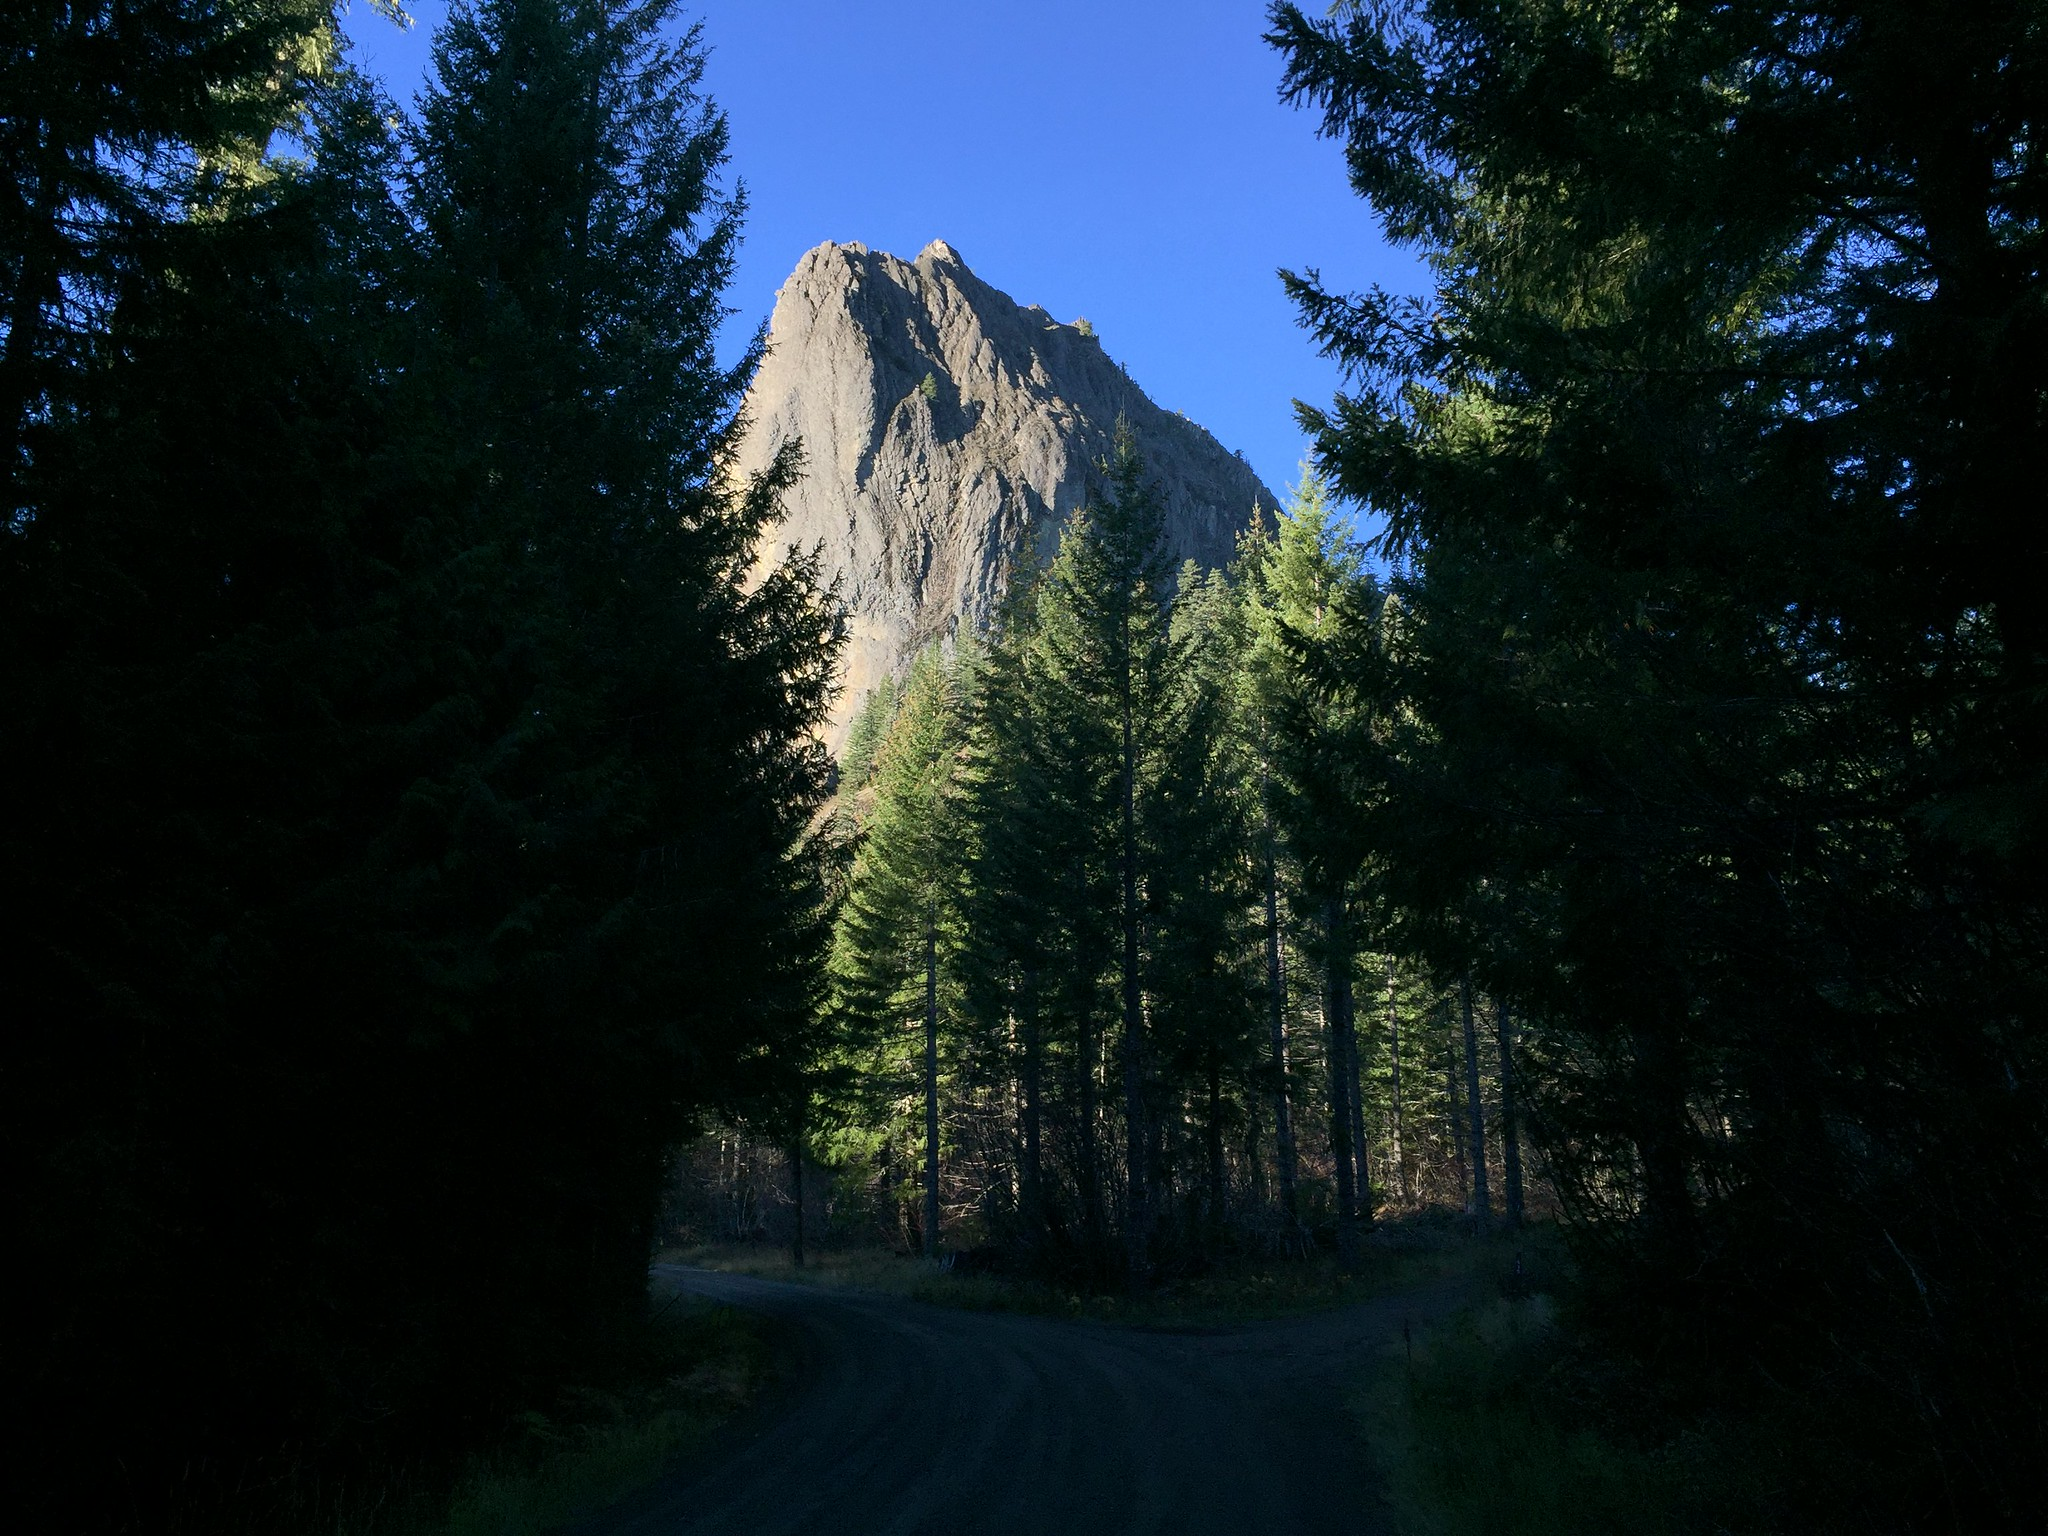 Wolf Rock, towering over the road